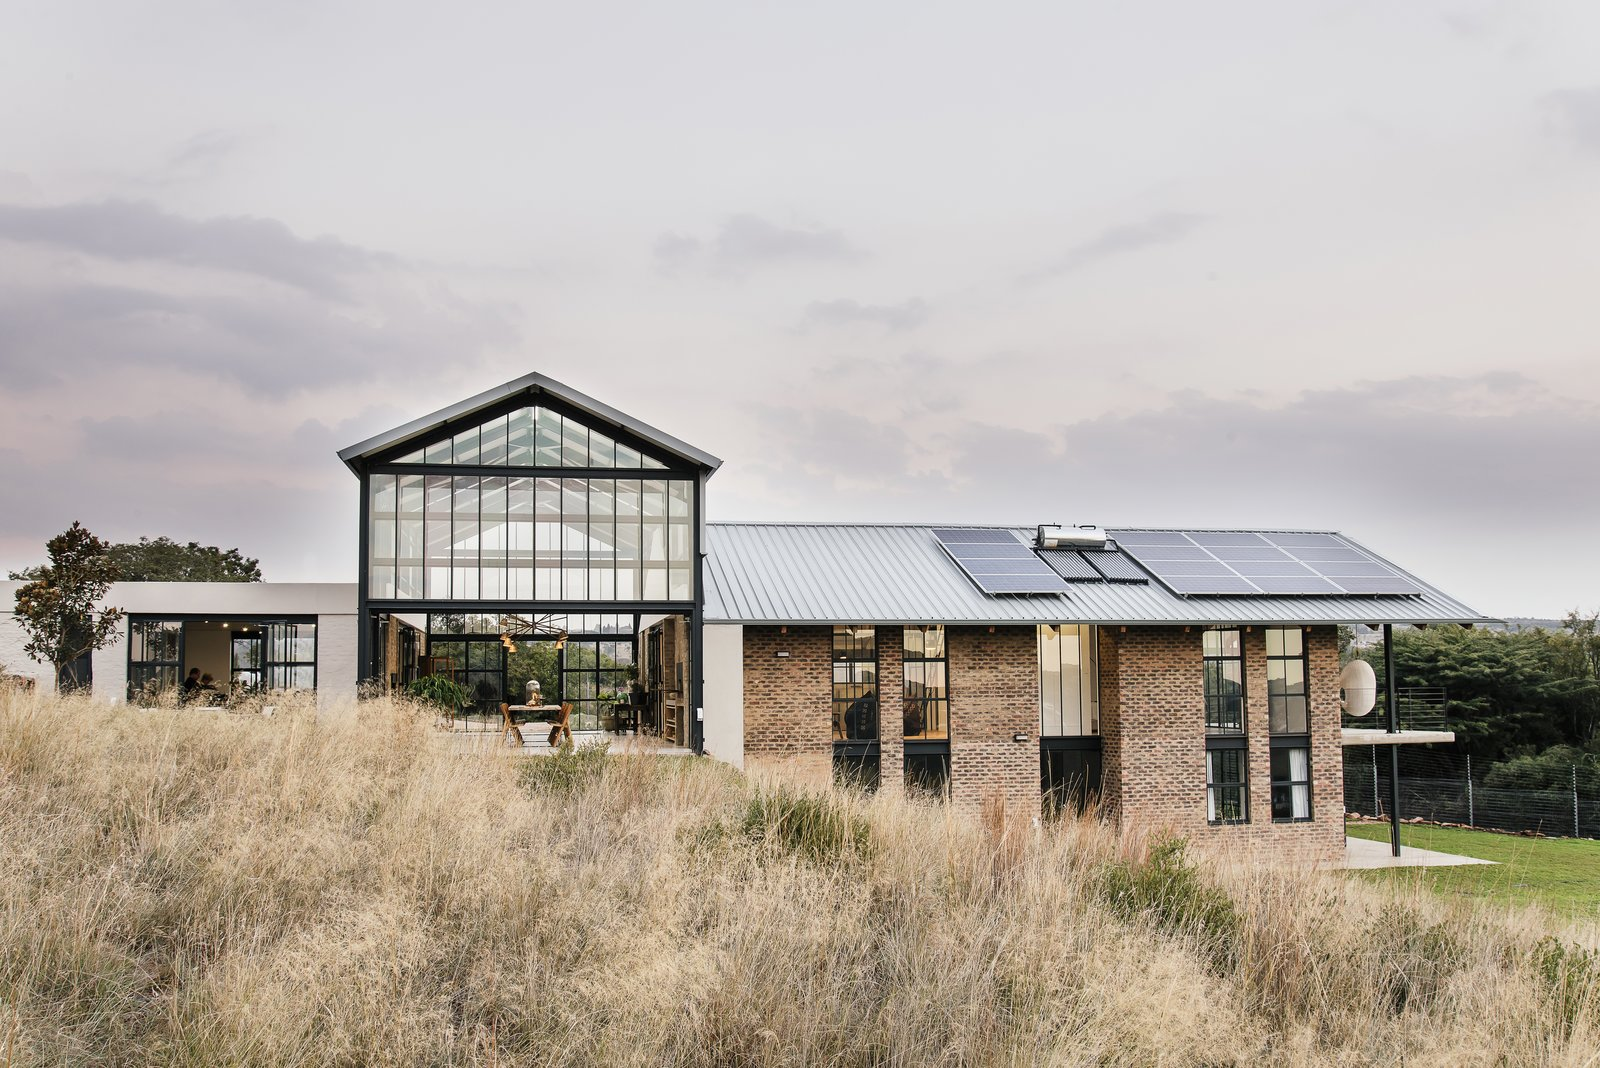 A South African Architect Designs an Off-Grid, Modern Home For Her Parents